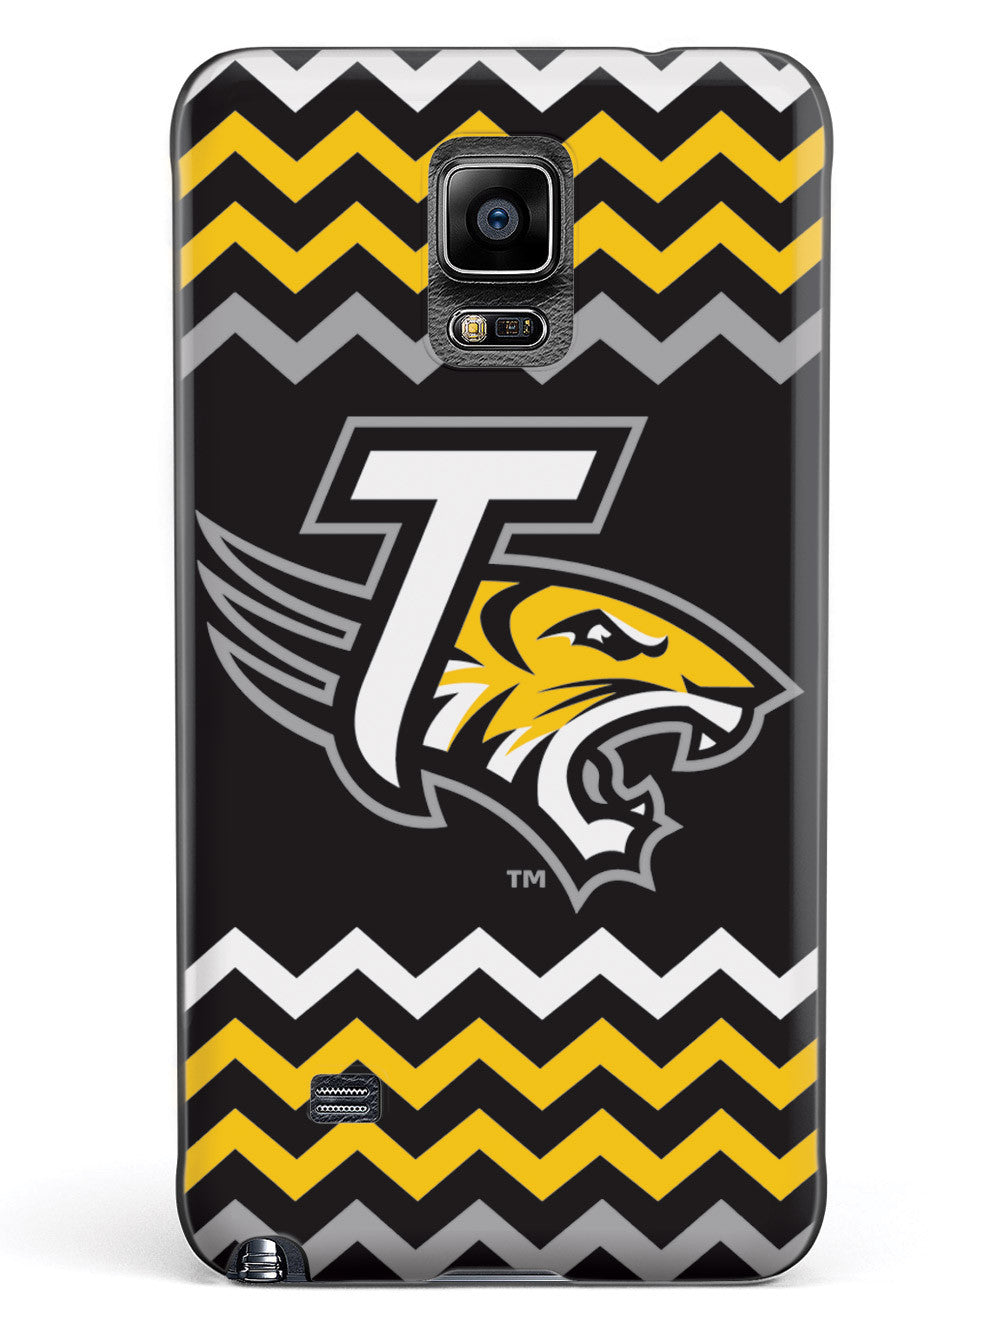 Towson University Tigers - Chevron Case